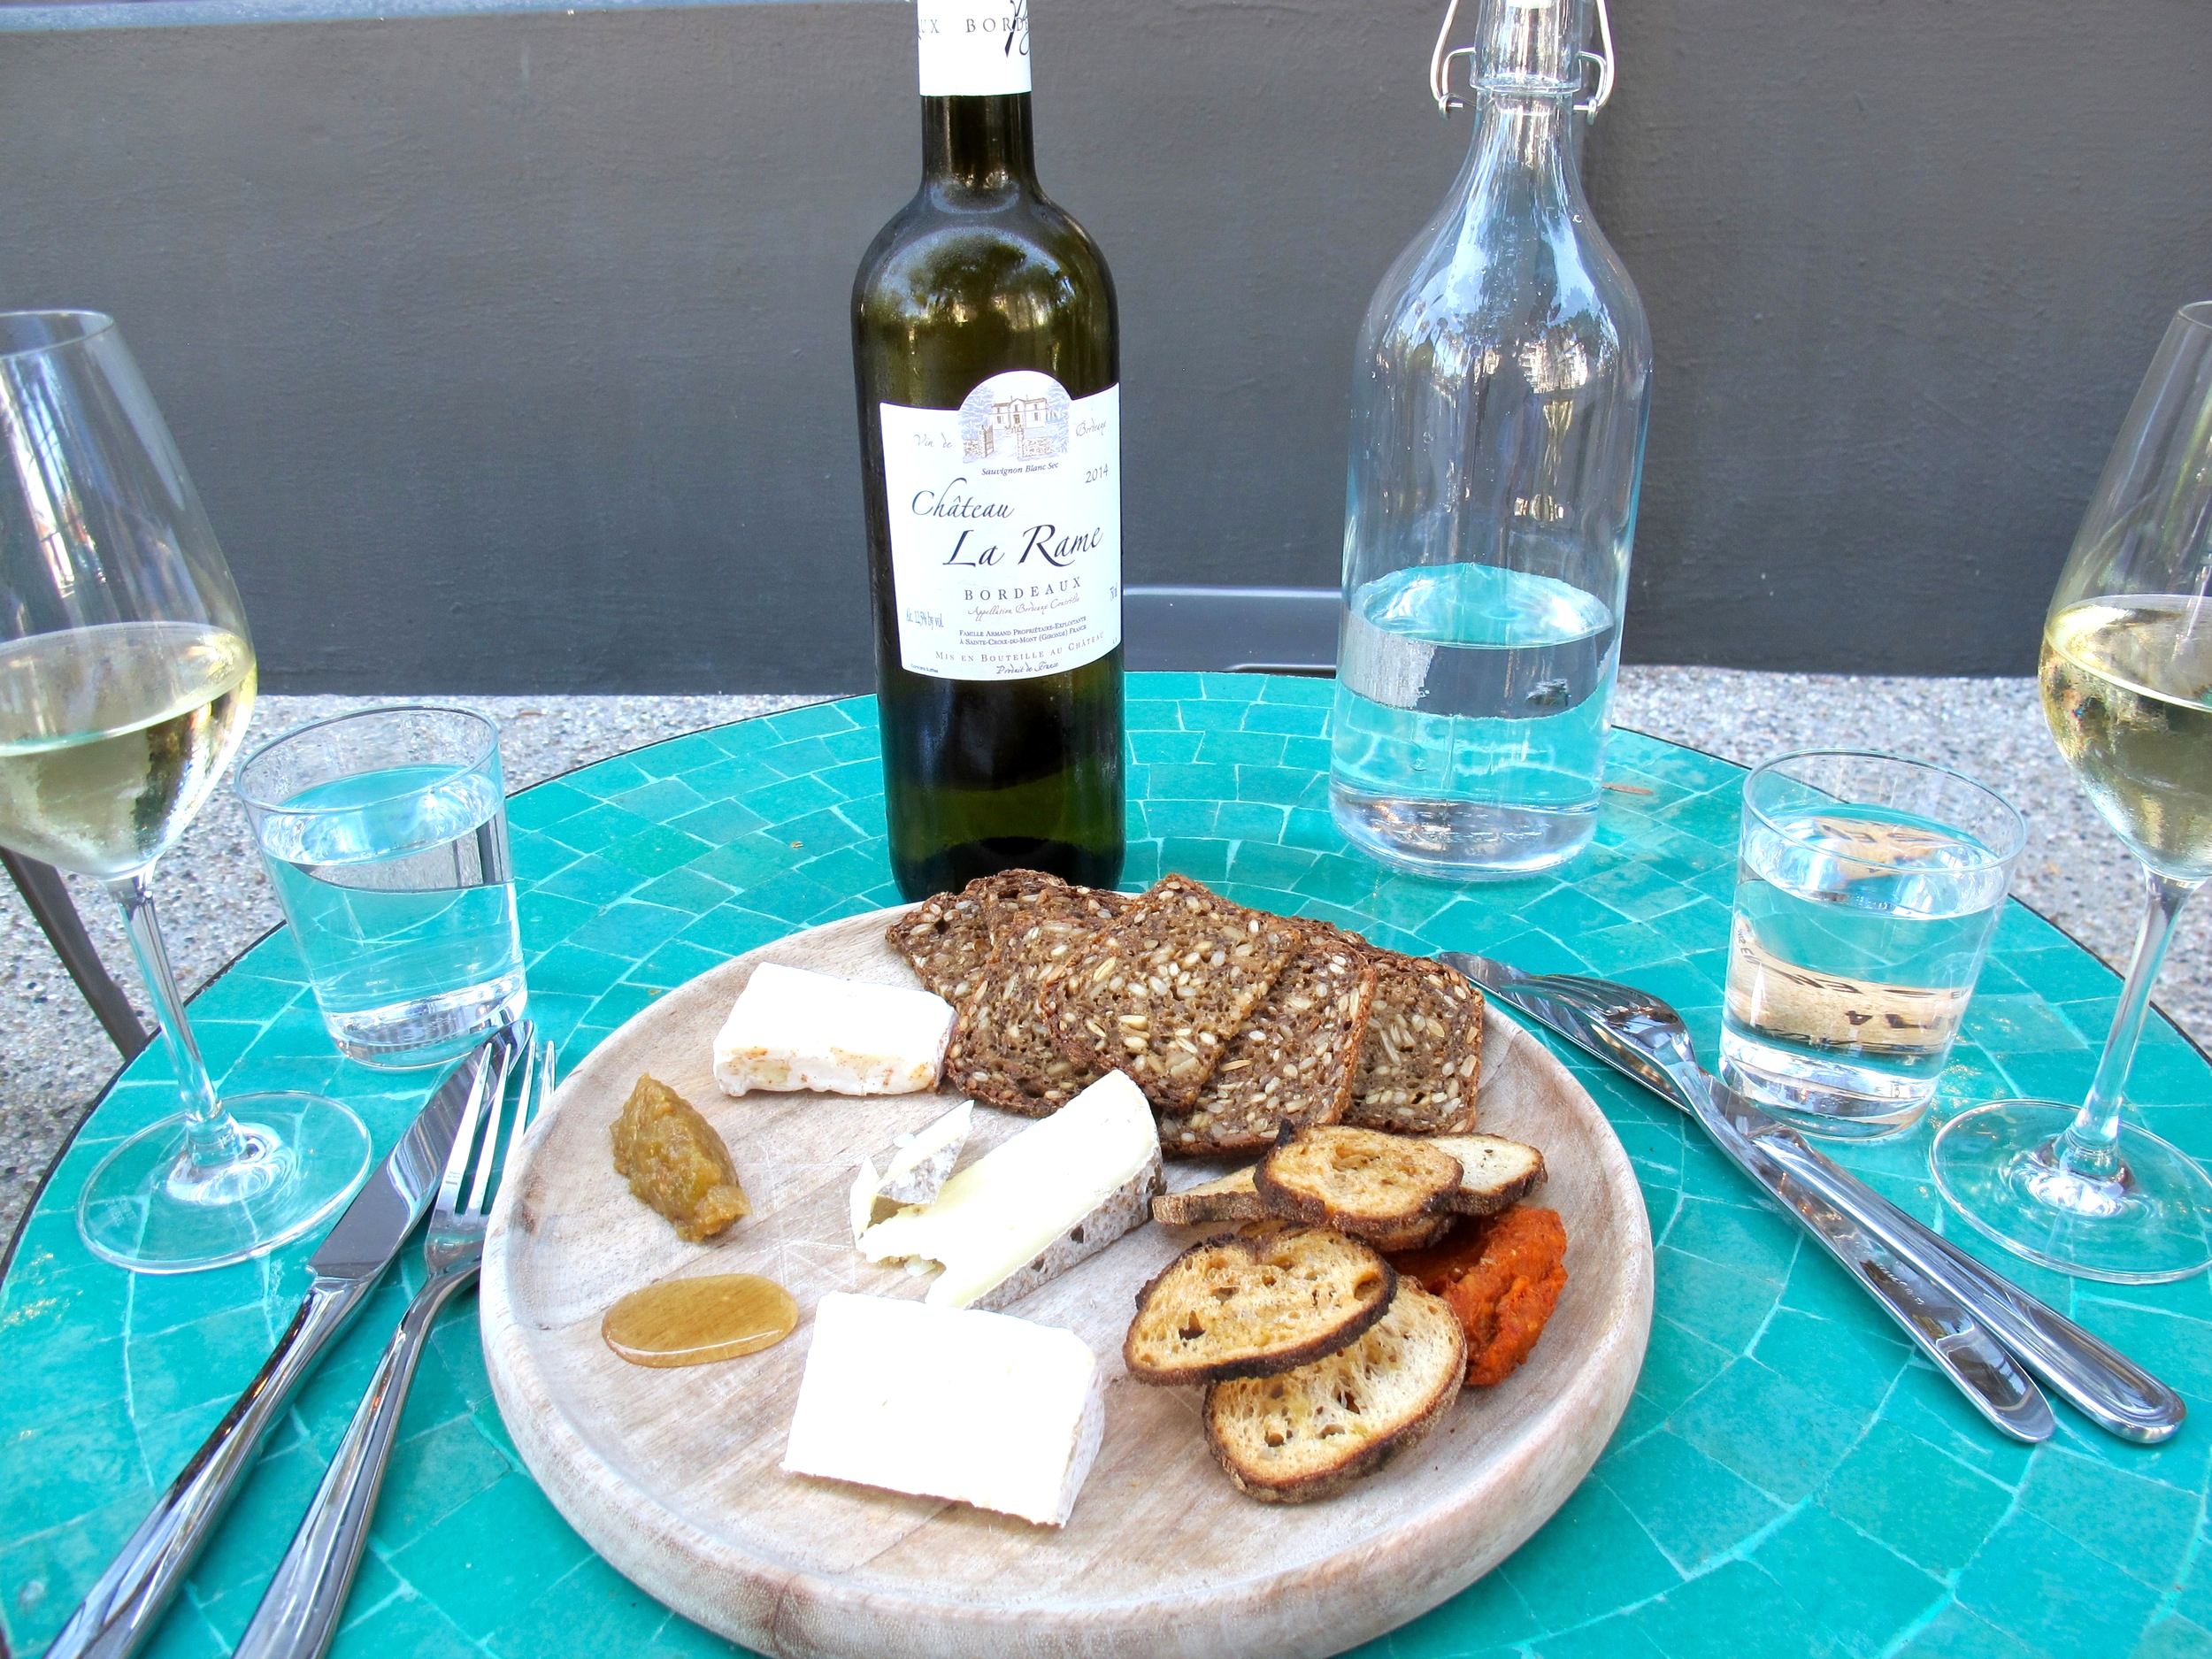 Esters Wine Shop Cheese Plate